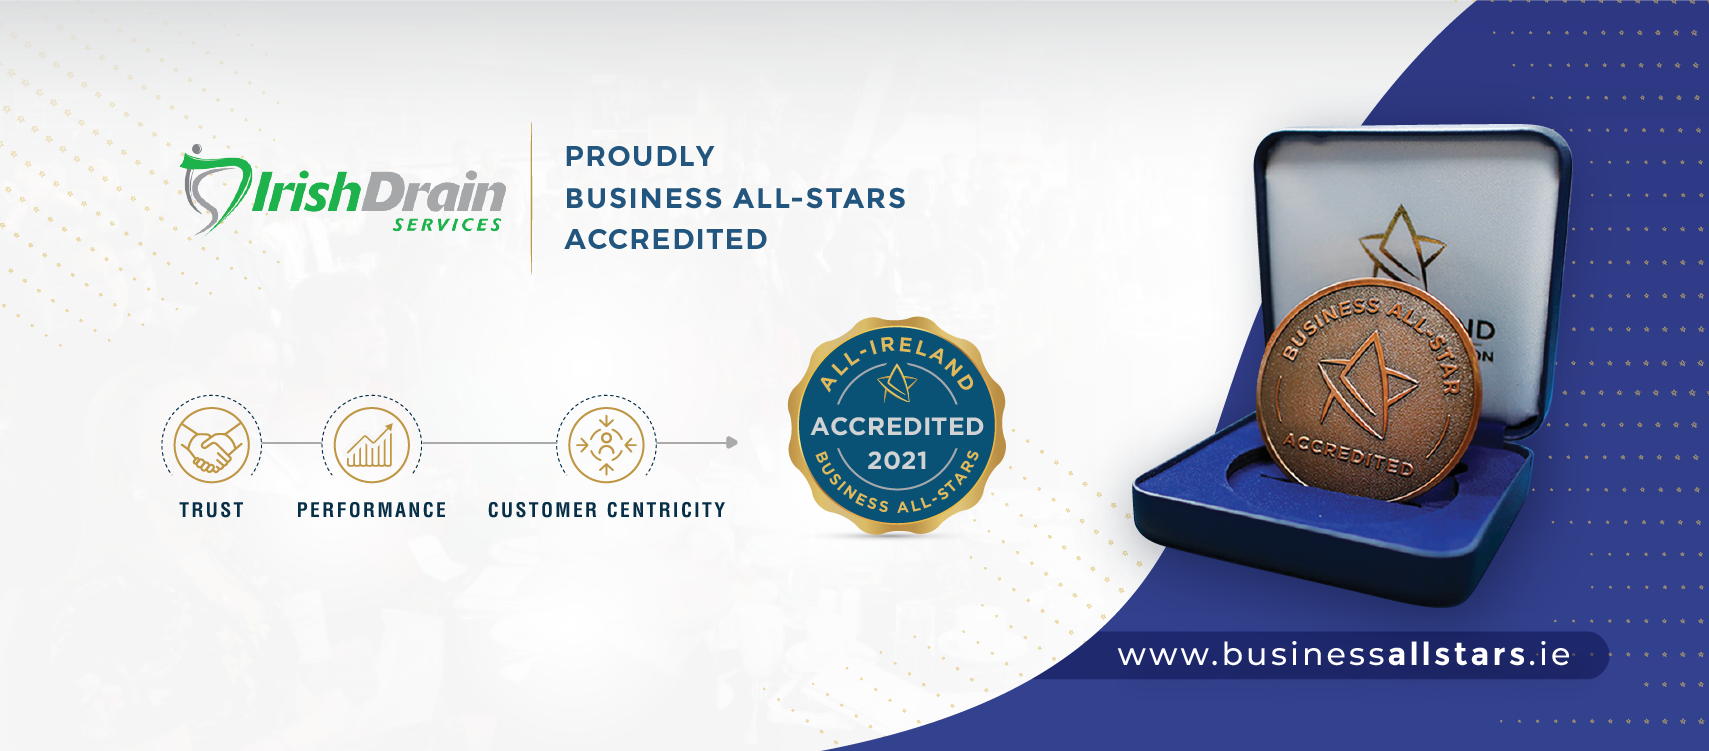 Irish Drain Services have been awarded Business All-Star Accreditation and the award of All-Star Kerry Small Business of the Year 2021